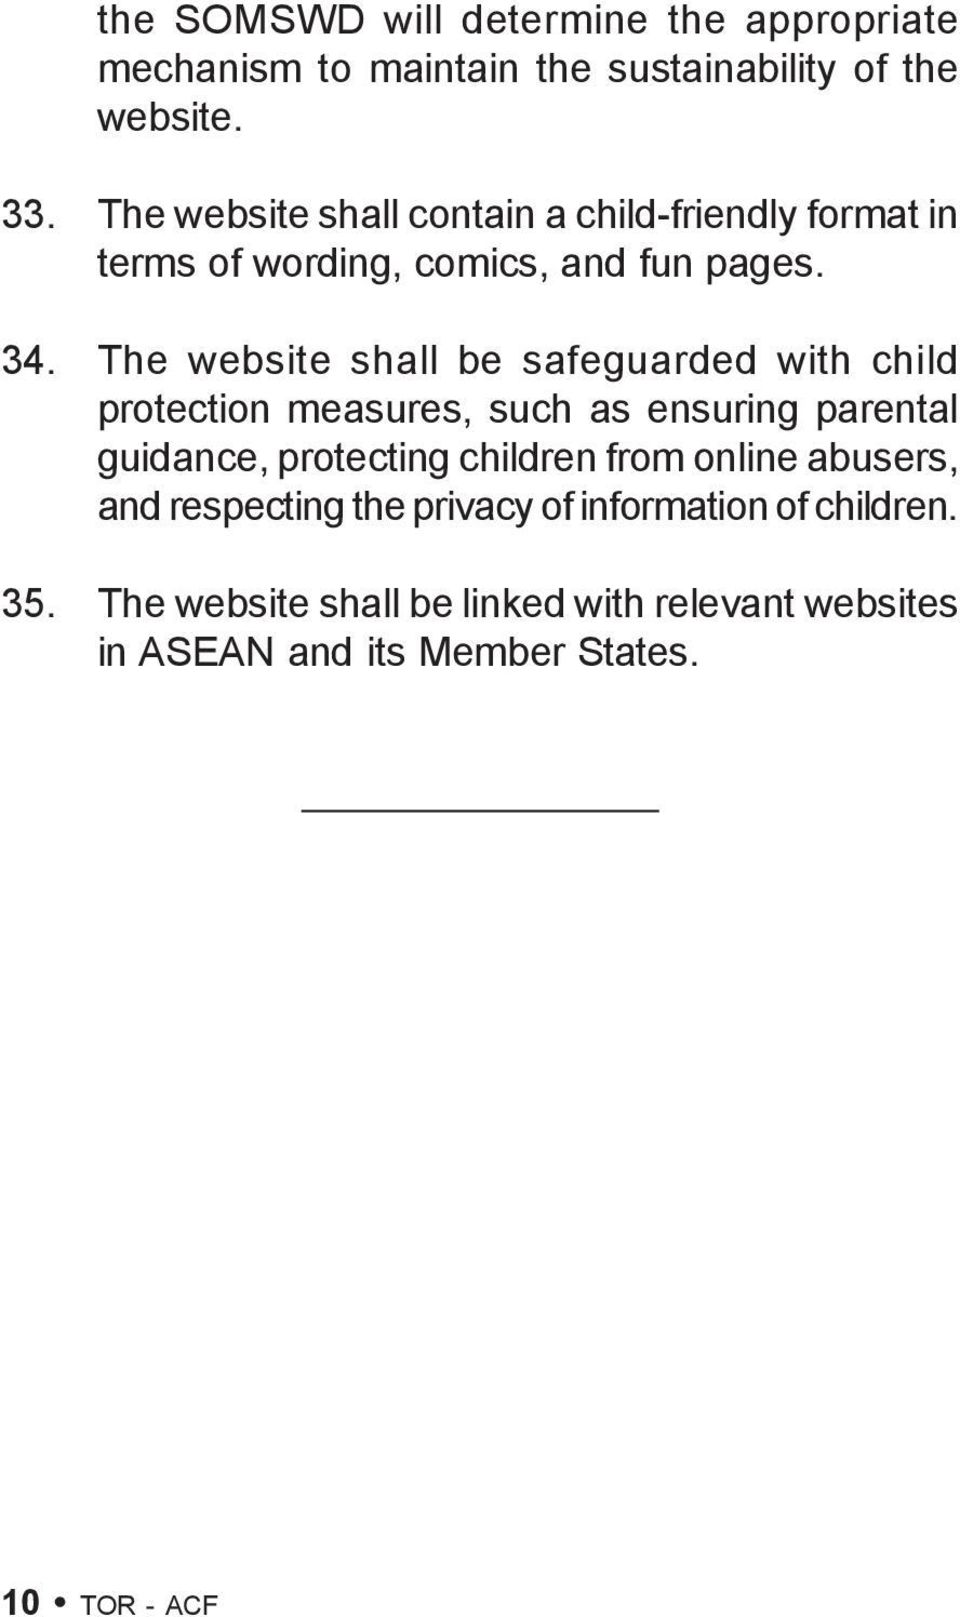 The website shall be safeguarded with child protection measures, such as ensuring parental guidance, protecting children